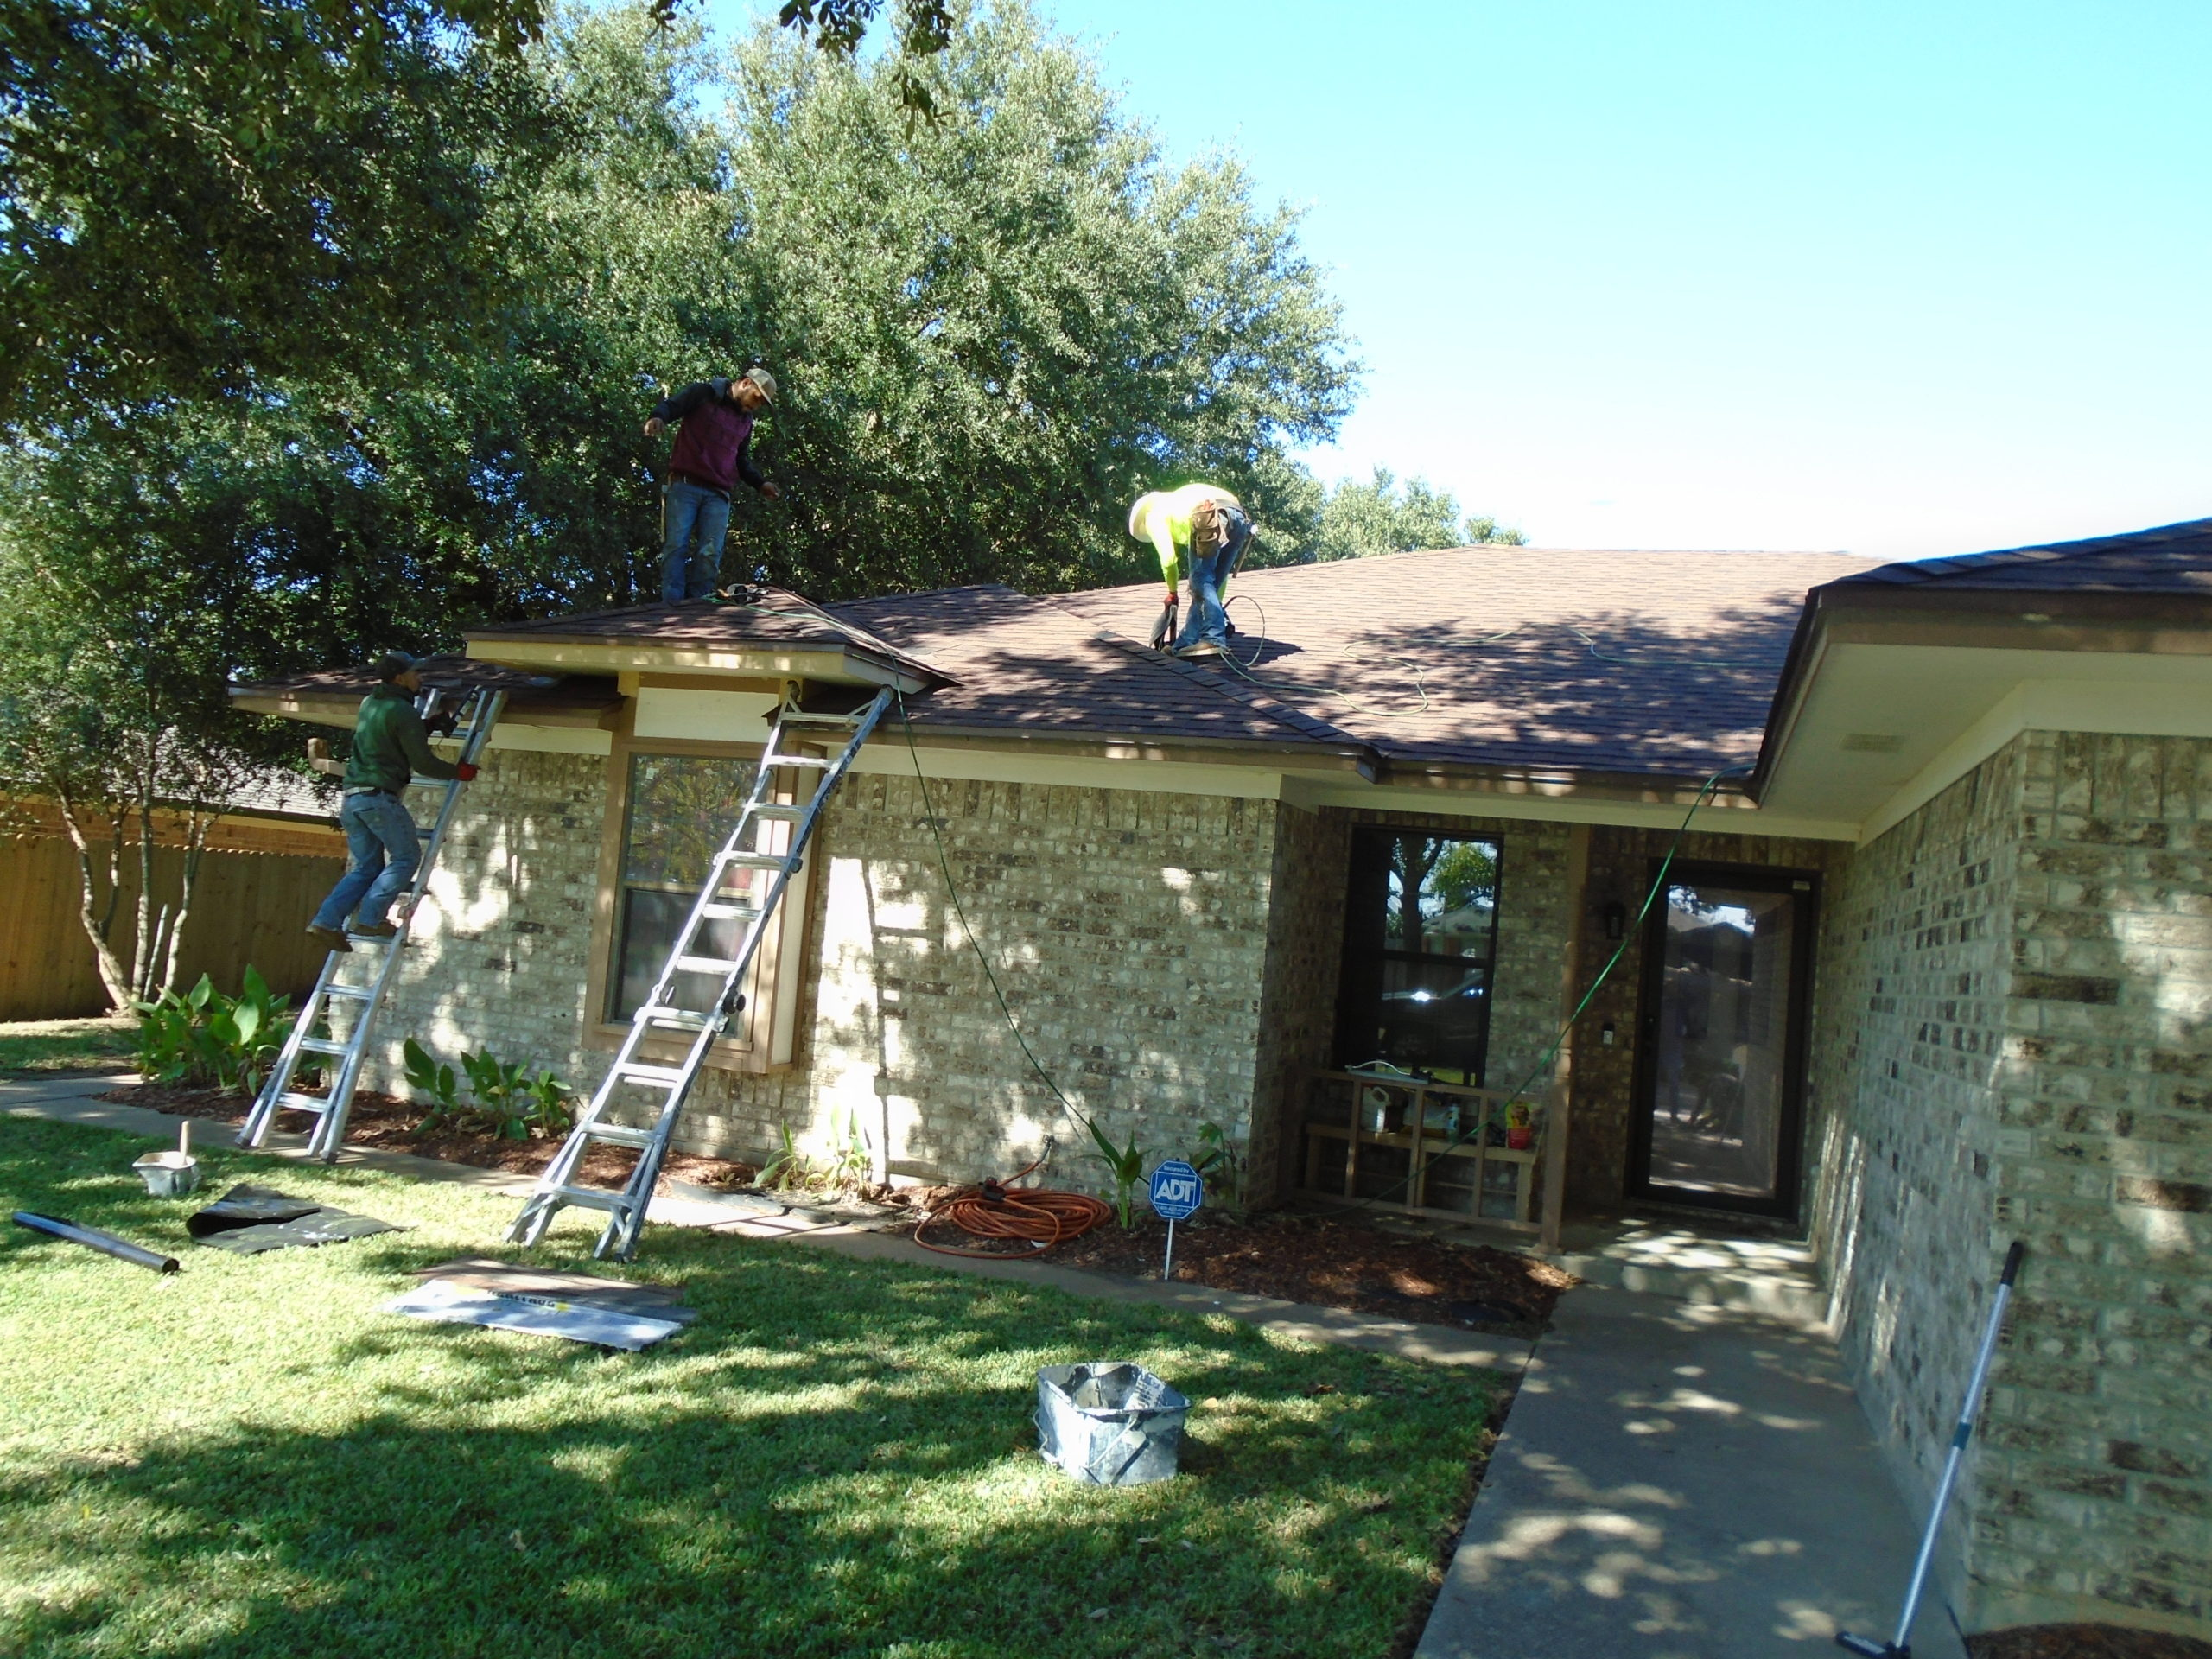 Best Roofing & Remodeling Waco New Shingle Roof Construction Project 3